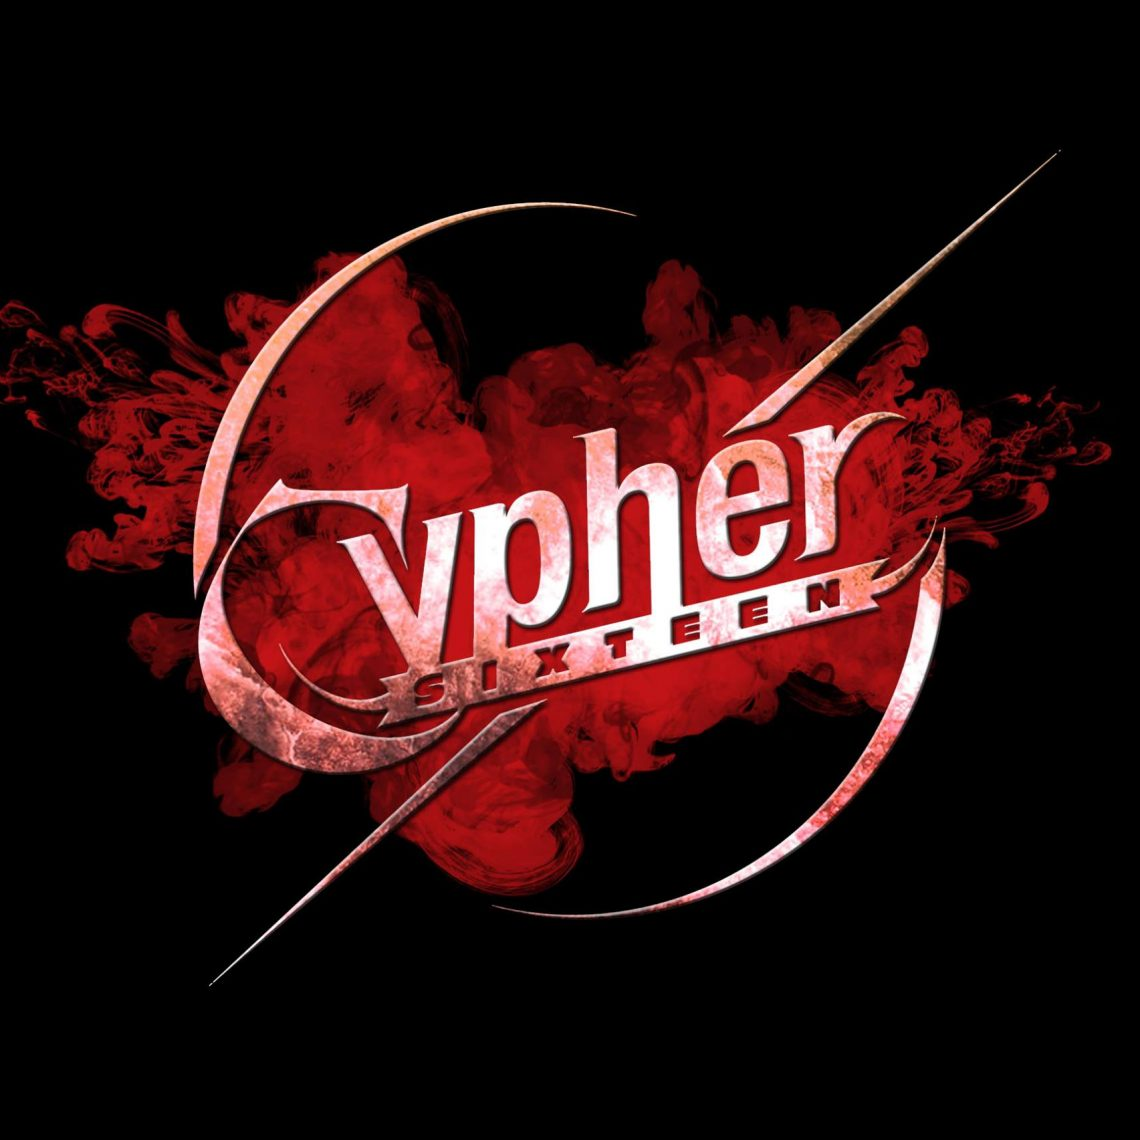 Cypher16 unveil lyric video for new single 'The New Horizon'